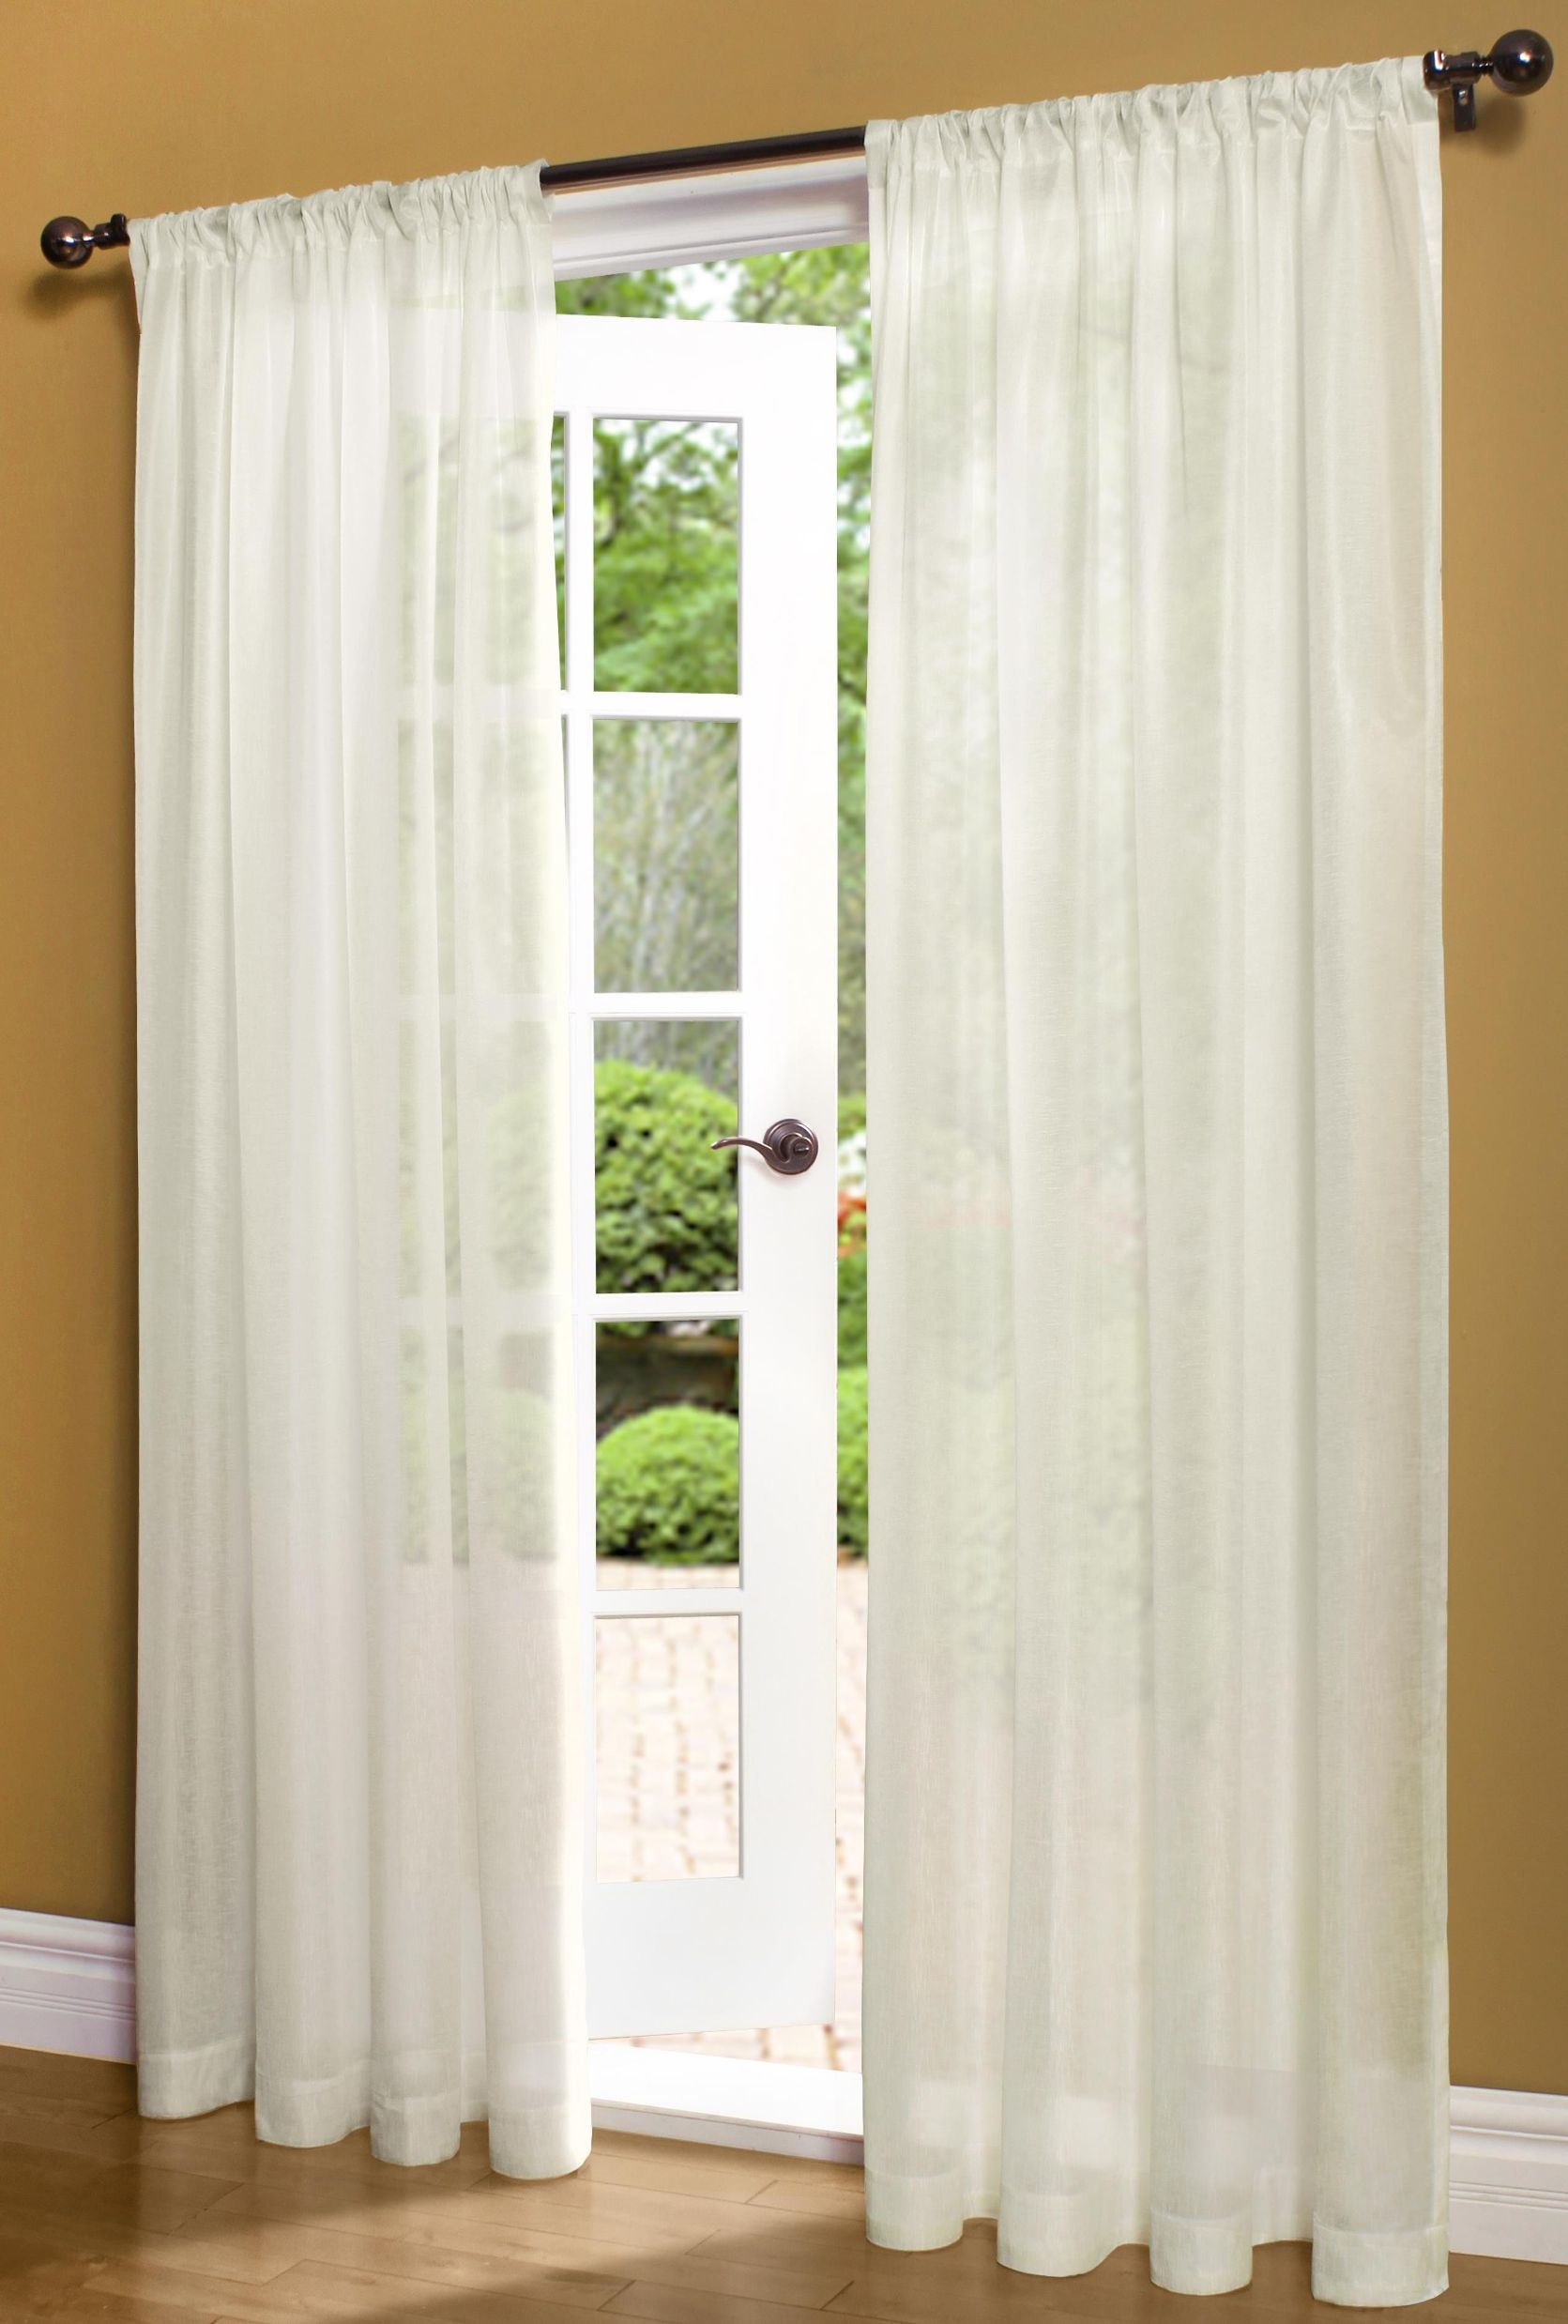 Insulated Sheer Curtains Thermal Semi Sheer Window Curtains For Curtain Sheers (View 25 of 25)